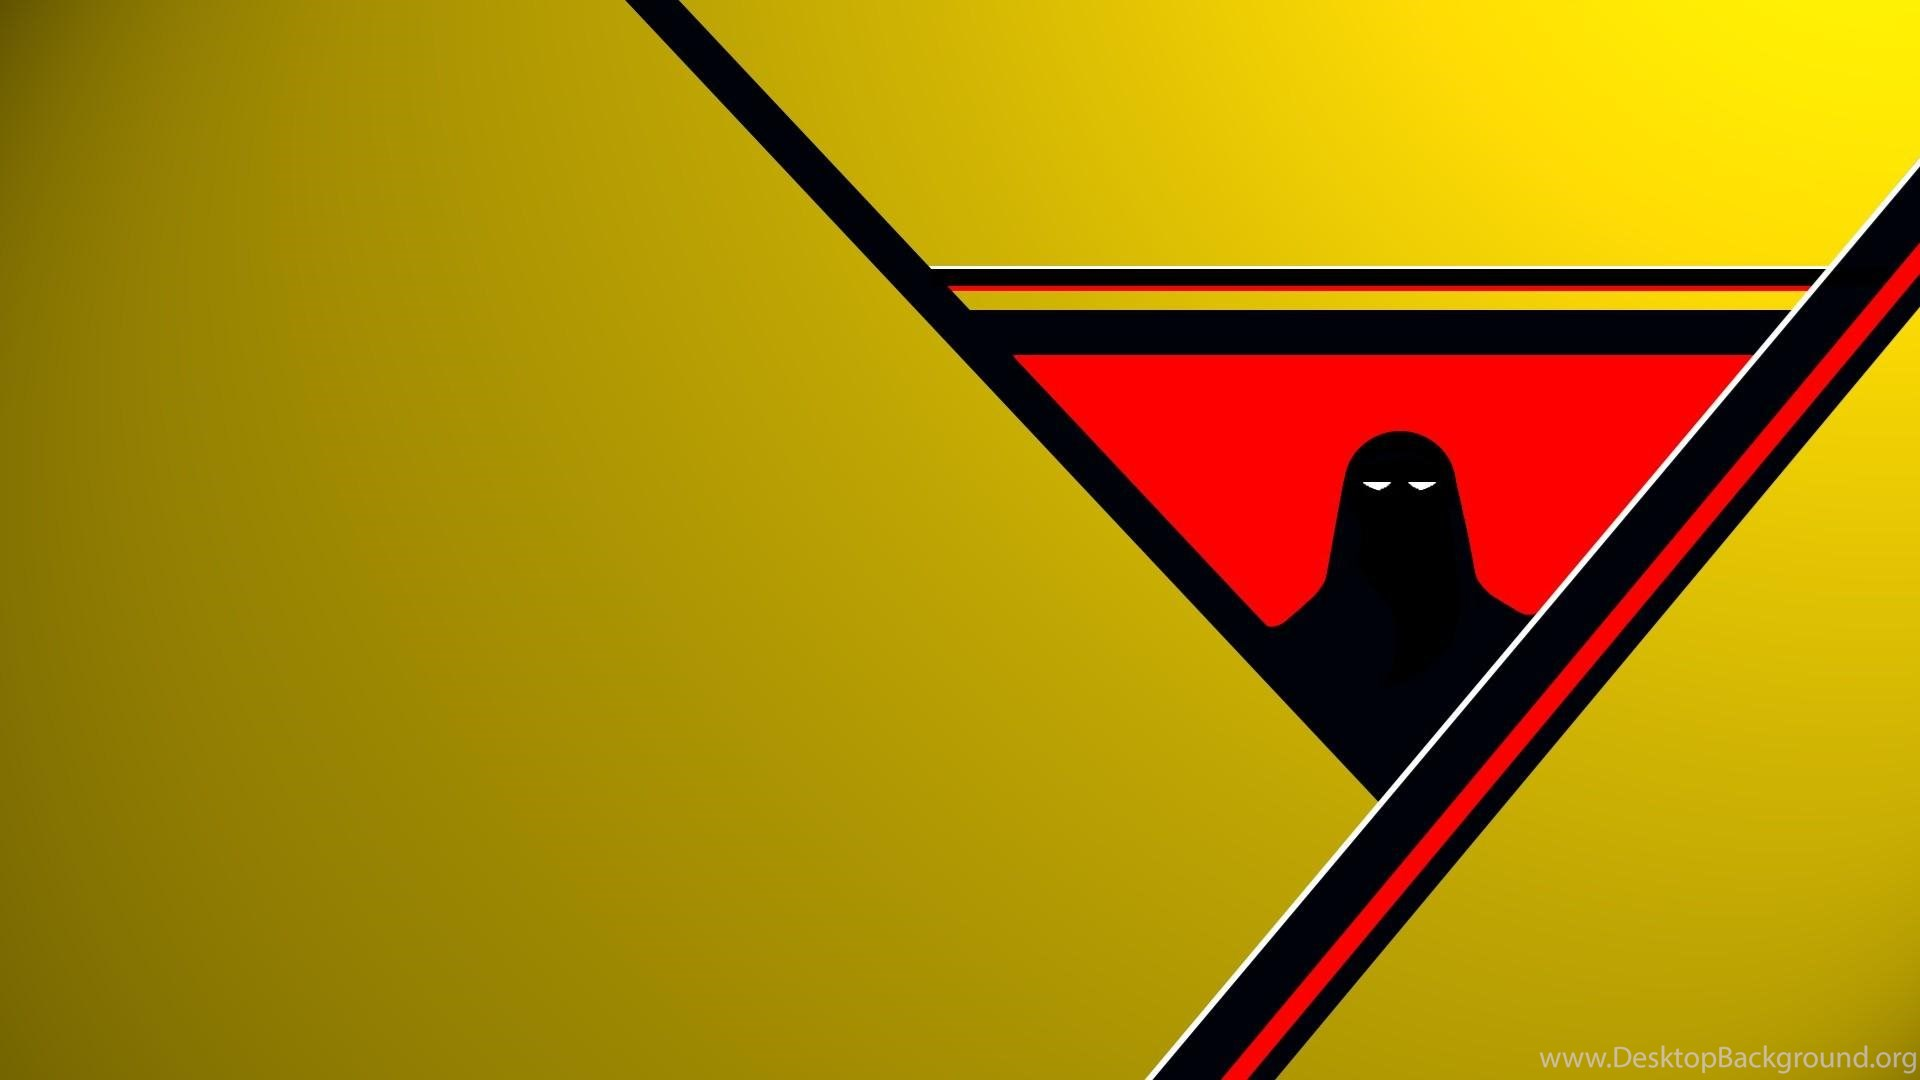 Hd Wallpapers Of Space Ghost Desktop Background